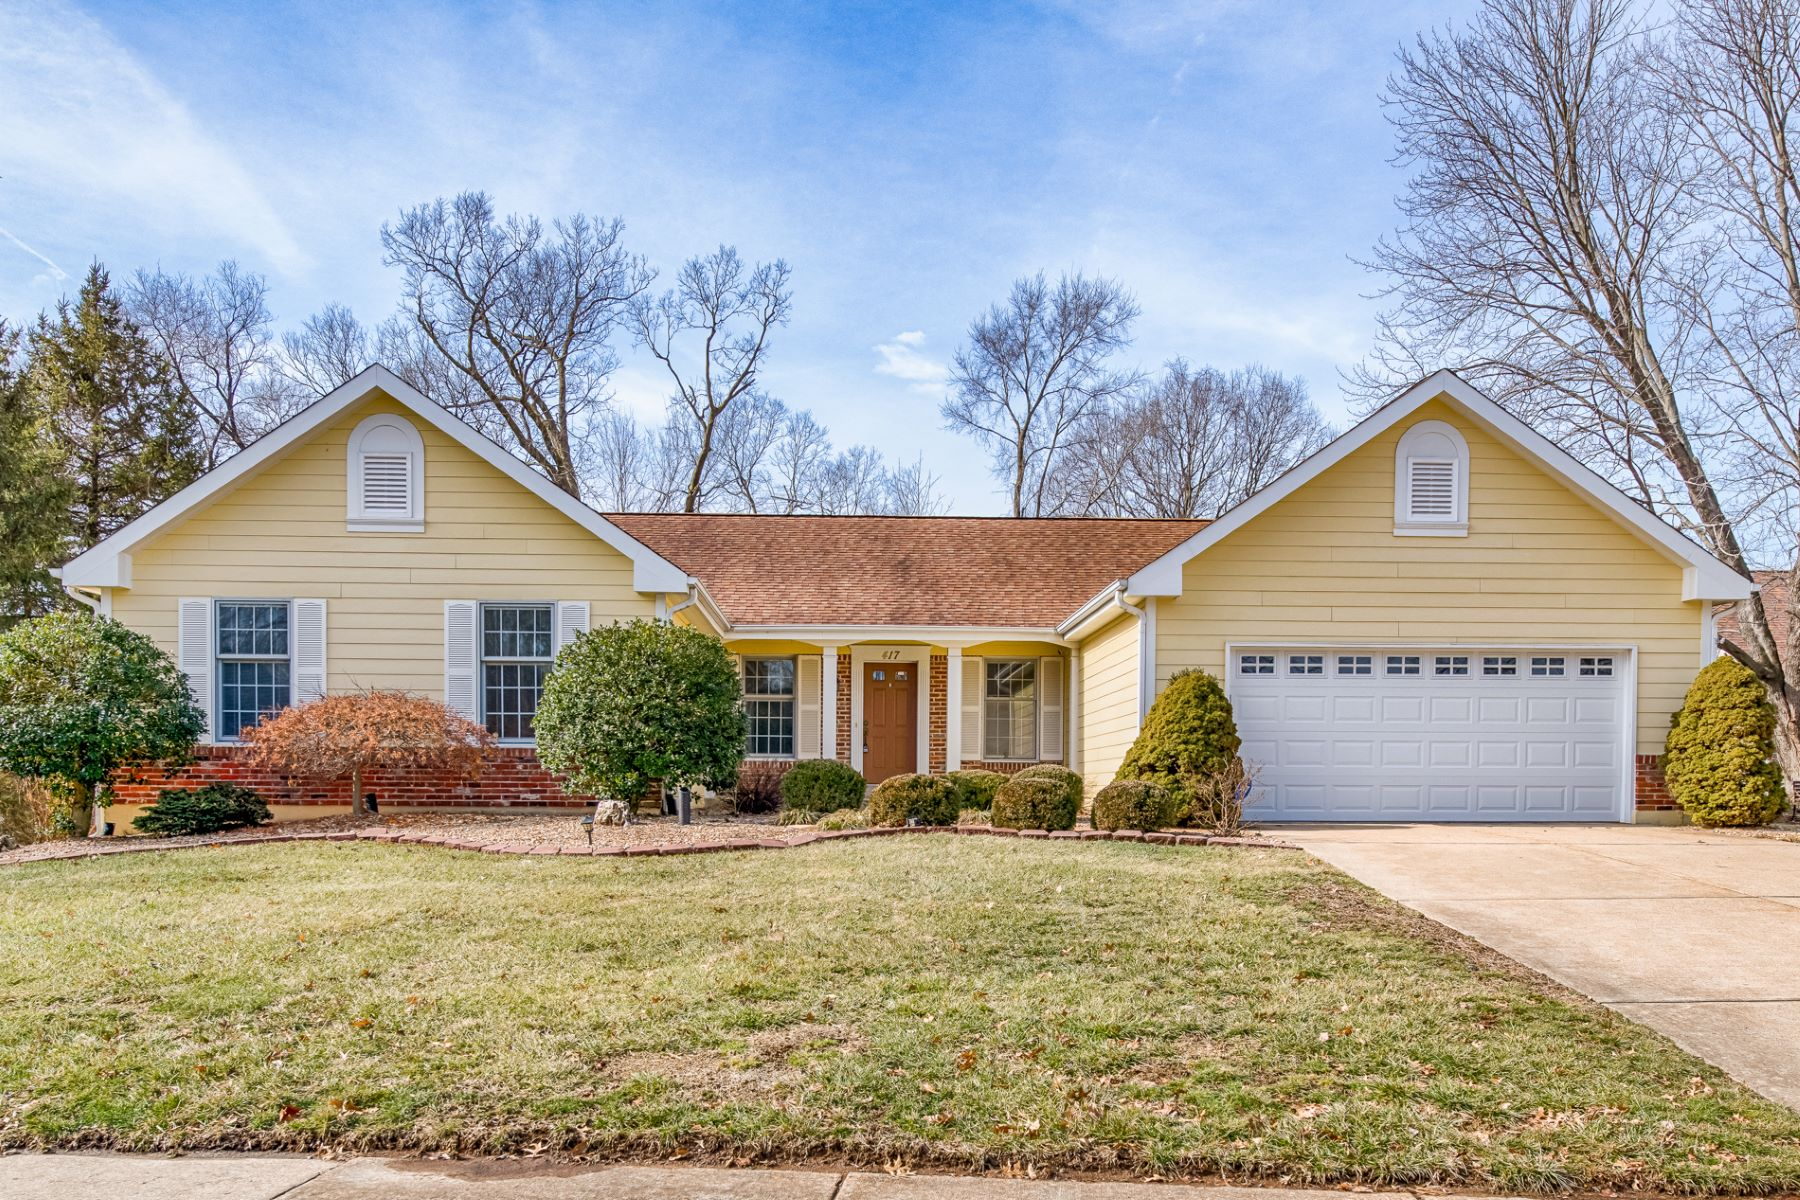 Single Family Home for Sale at Jumper Hill Ct 417 Jumper Hill Ct Chesterfield, Missouri 63017 United States